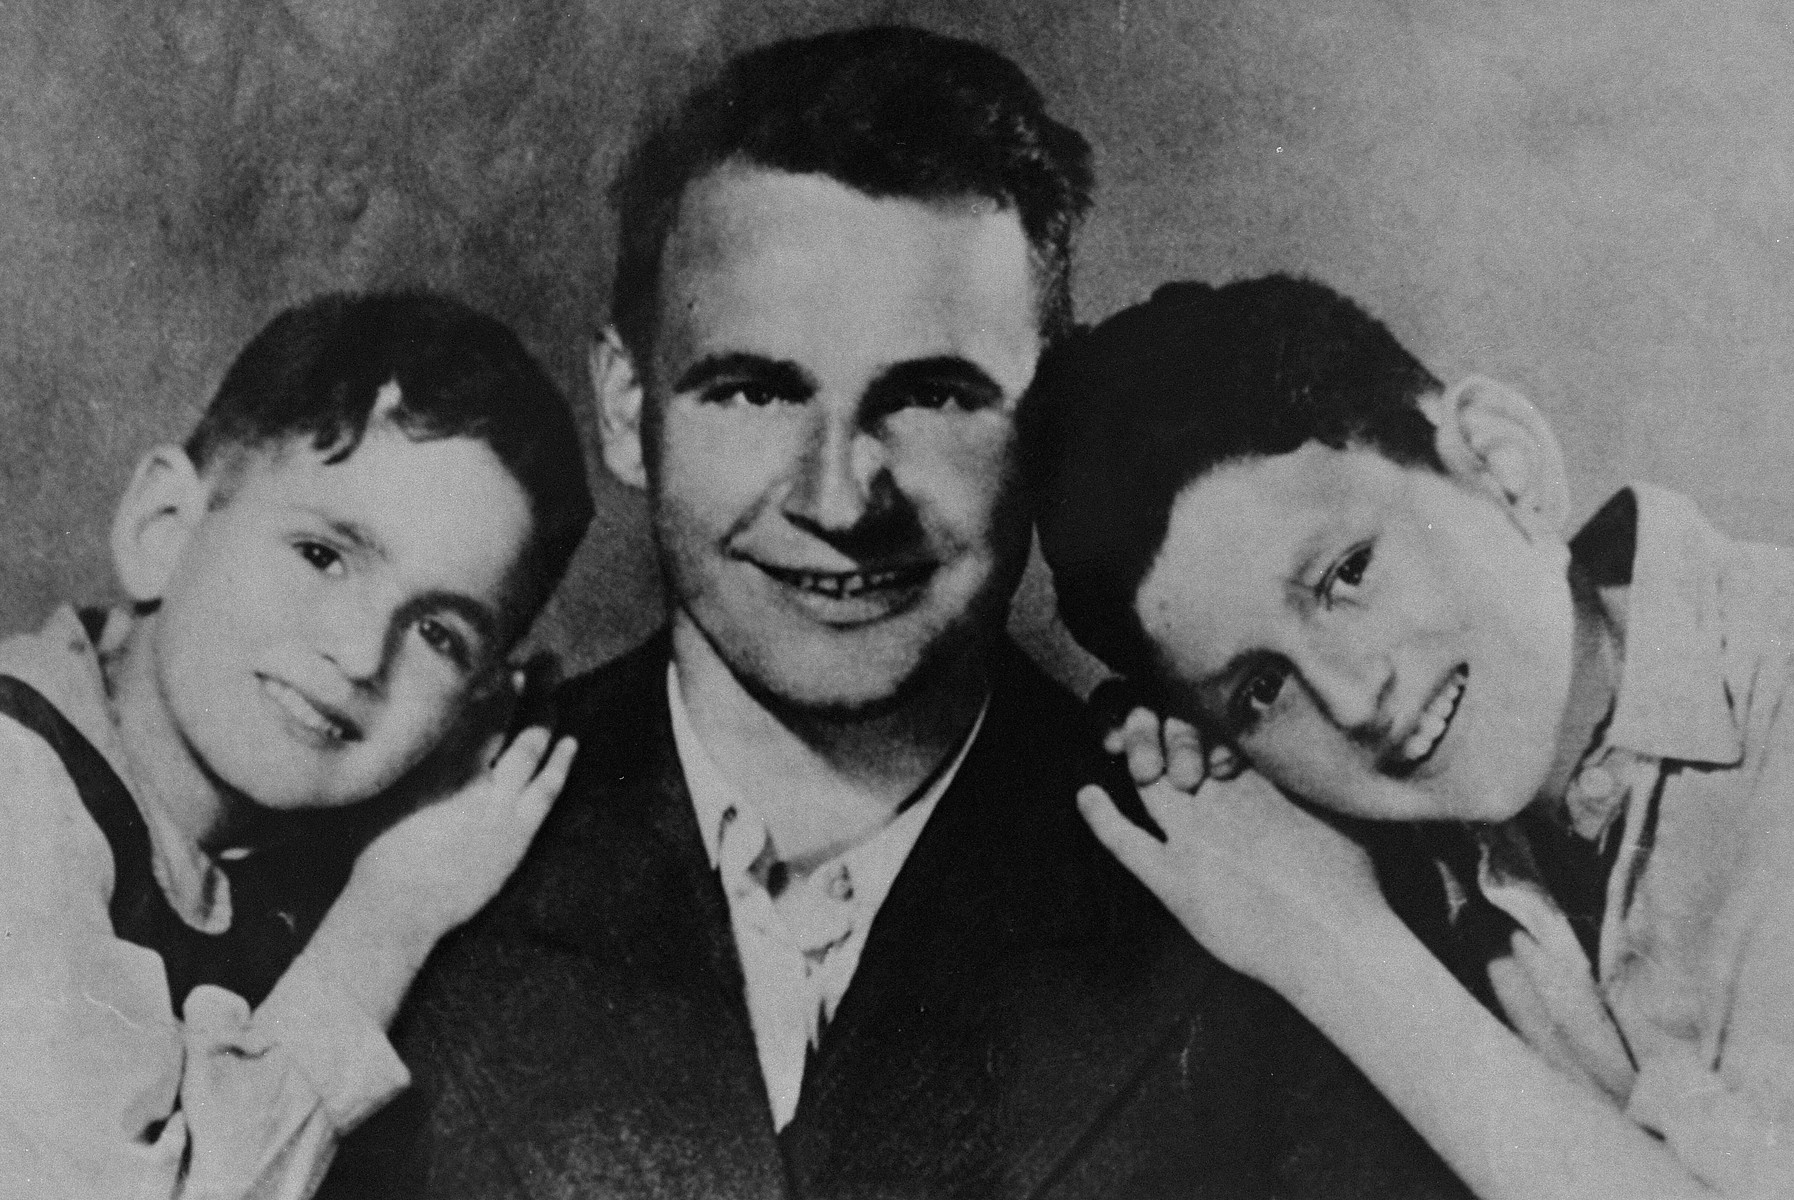 Polish rescuer Alex Roslan poses with David and Jacob Gutgeld, the two Jewish children he hid during the German occupation of Warsaw.